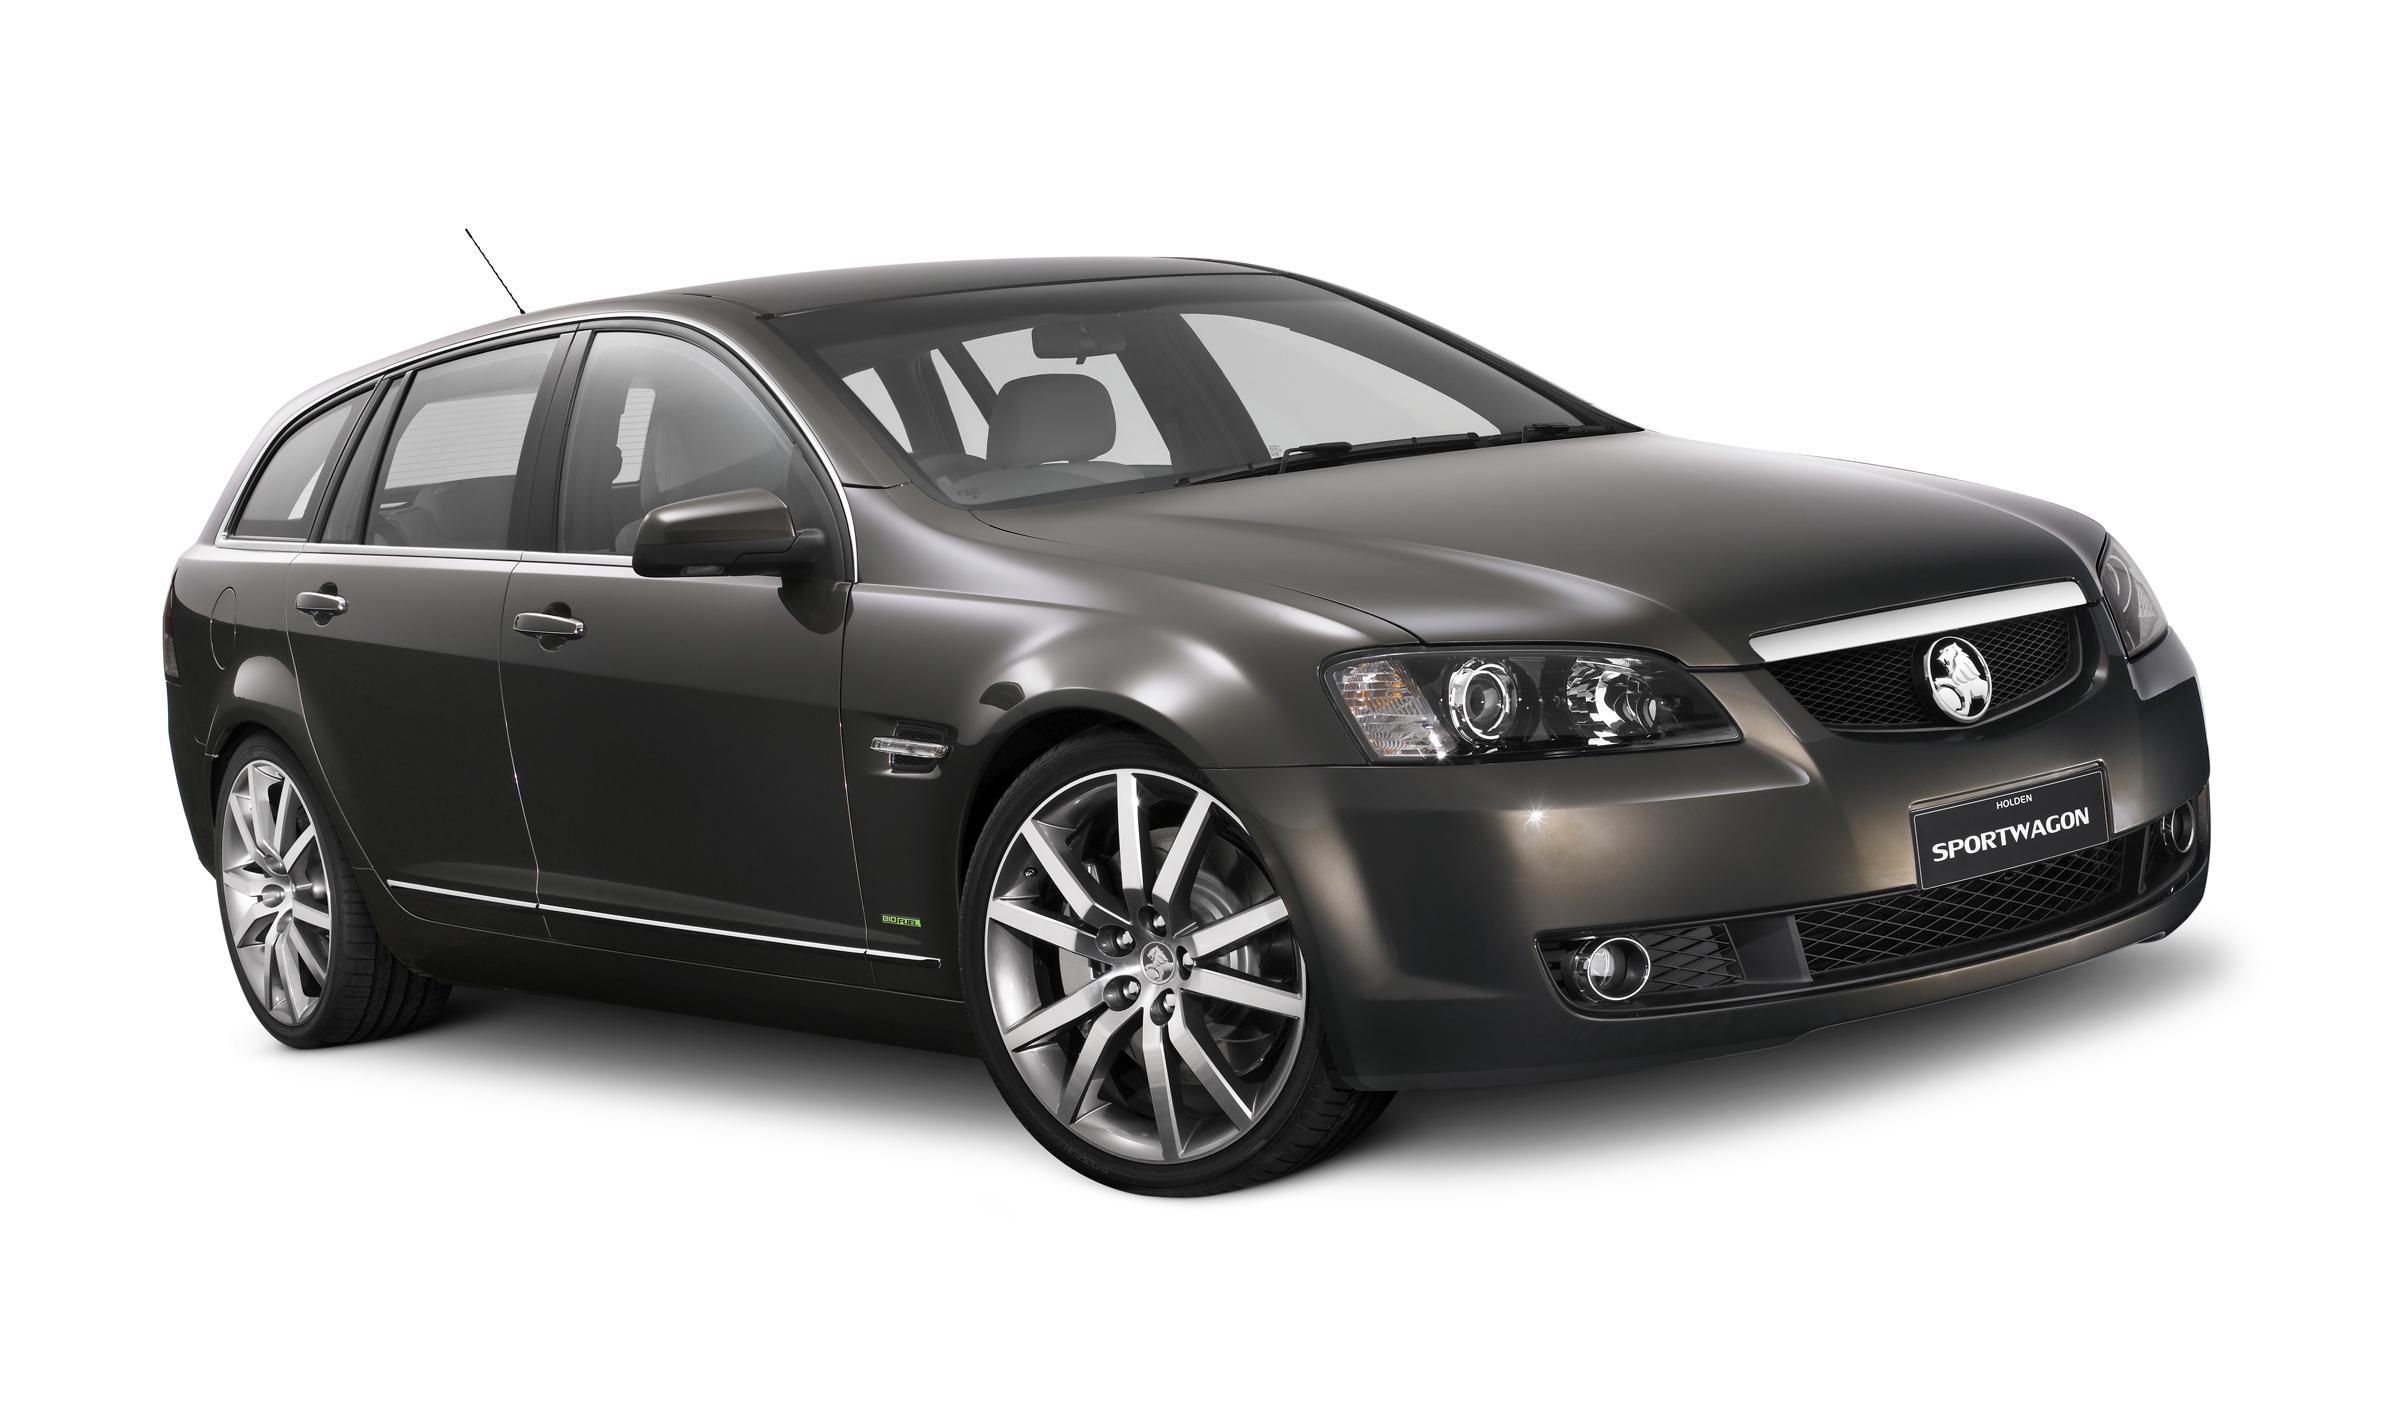 2008 holden ve commodore sportwagon review gallery top speed the world premier of the new ve commodore sportwagon and the motor show debut of the new ve ute range headline gm holdens stand at this years australian vanachro Images